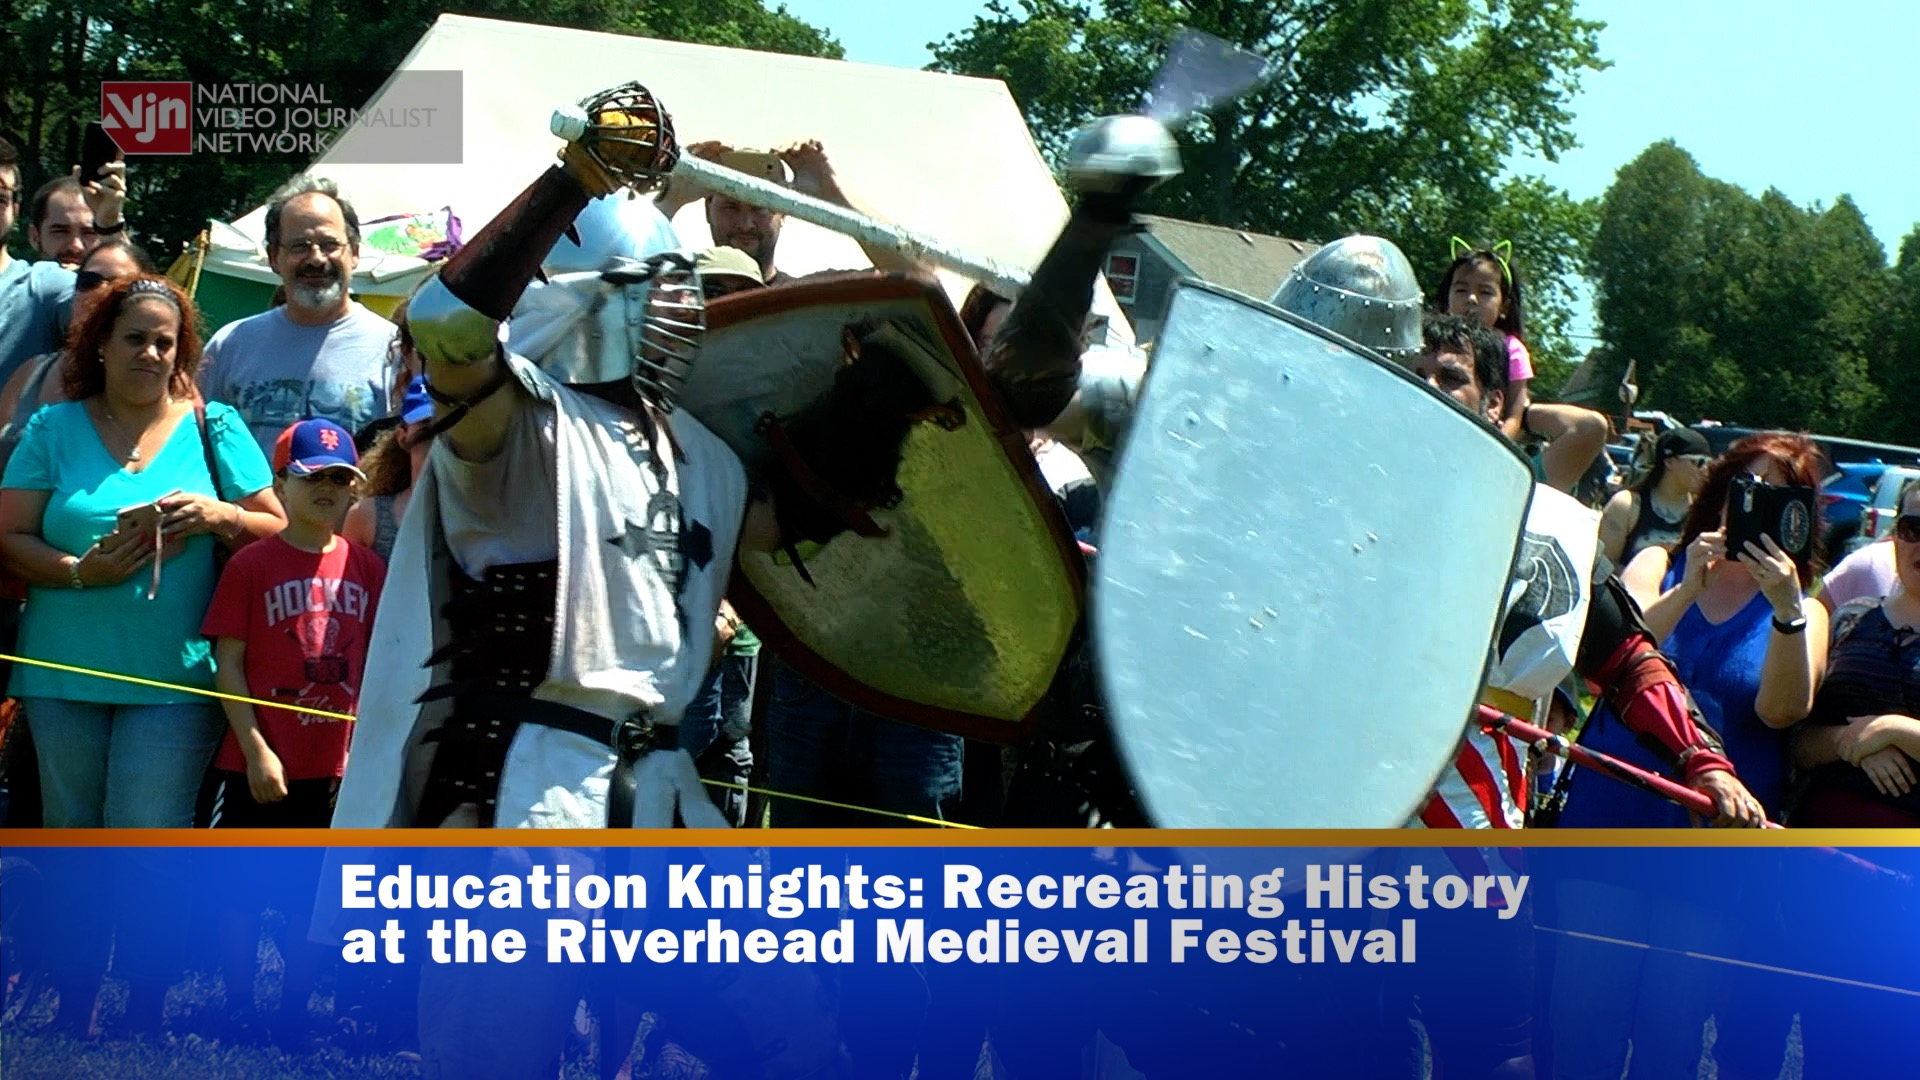 Education Knights: Inside The Riverhead Medieval Festival